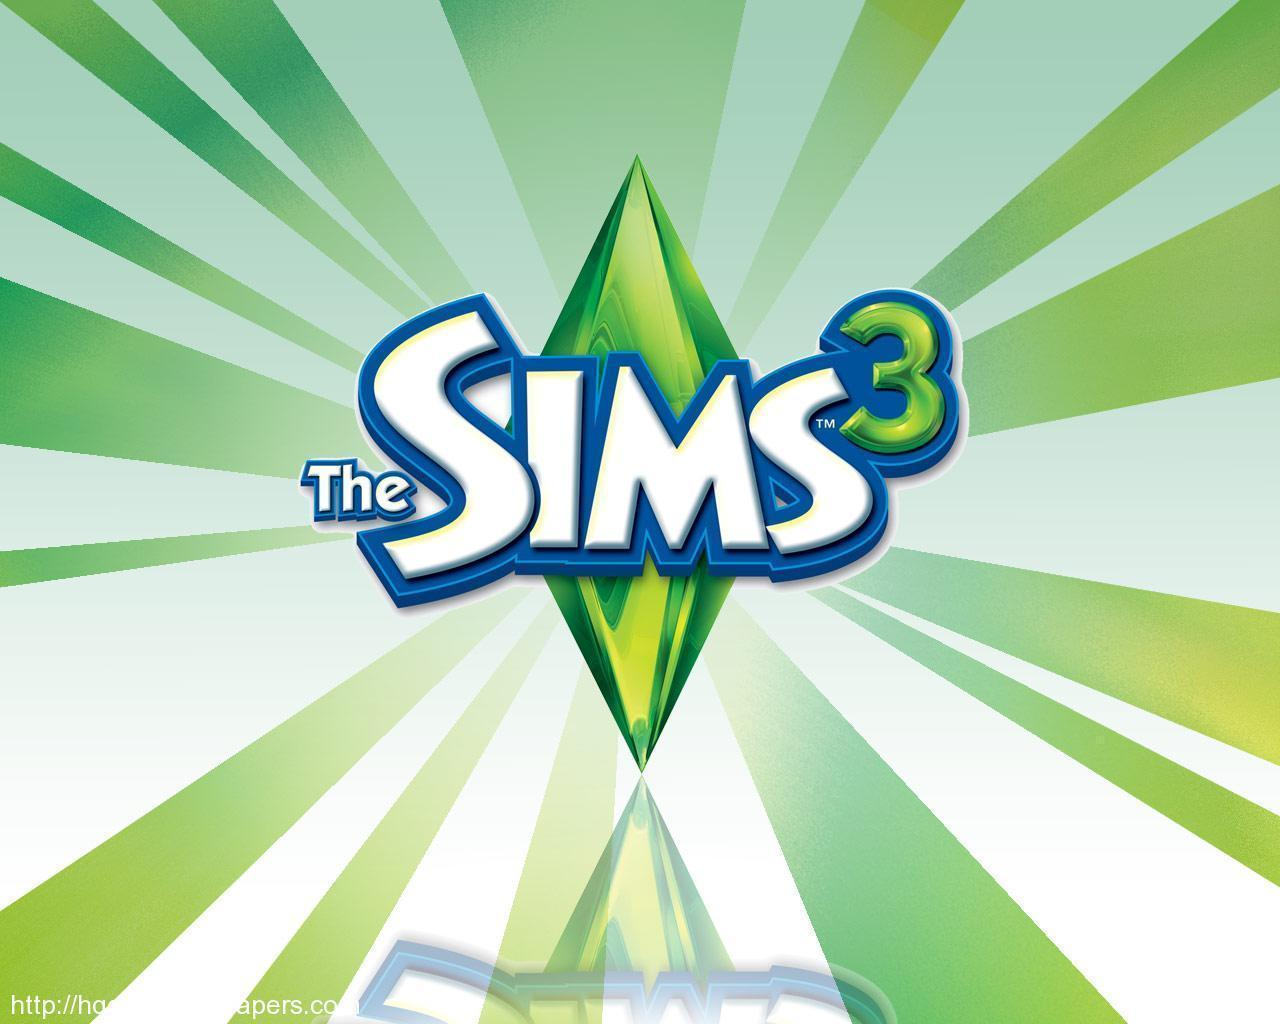 Sims 3 Game High Quality Wallpaper widescreen wallpaper